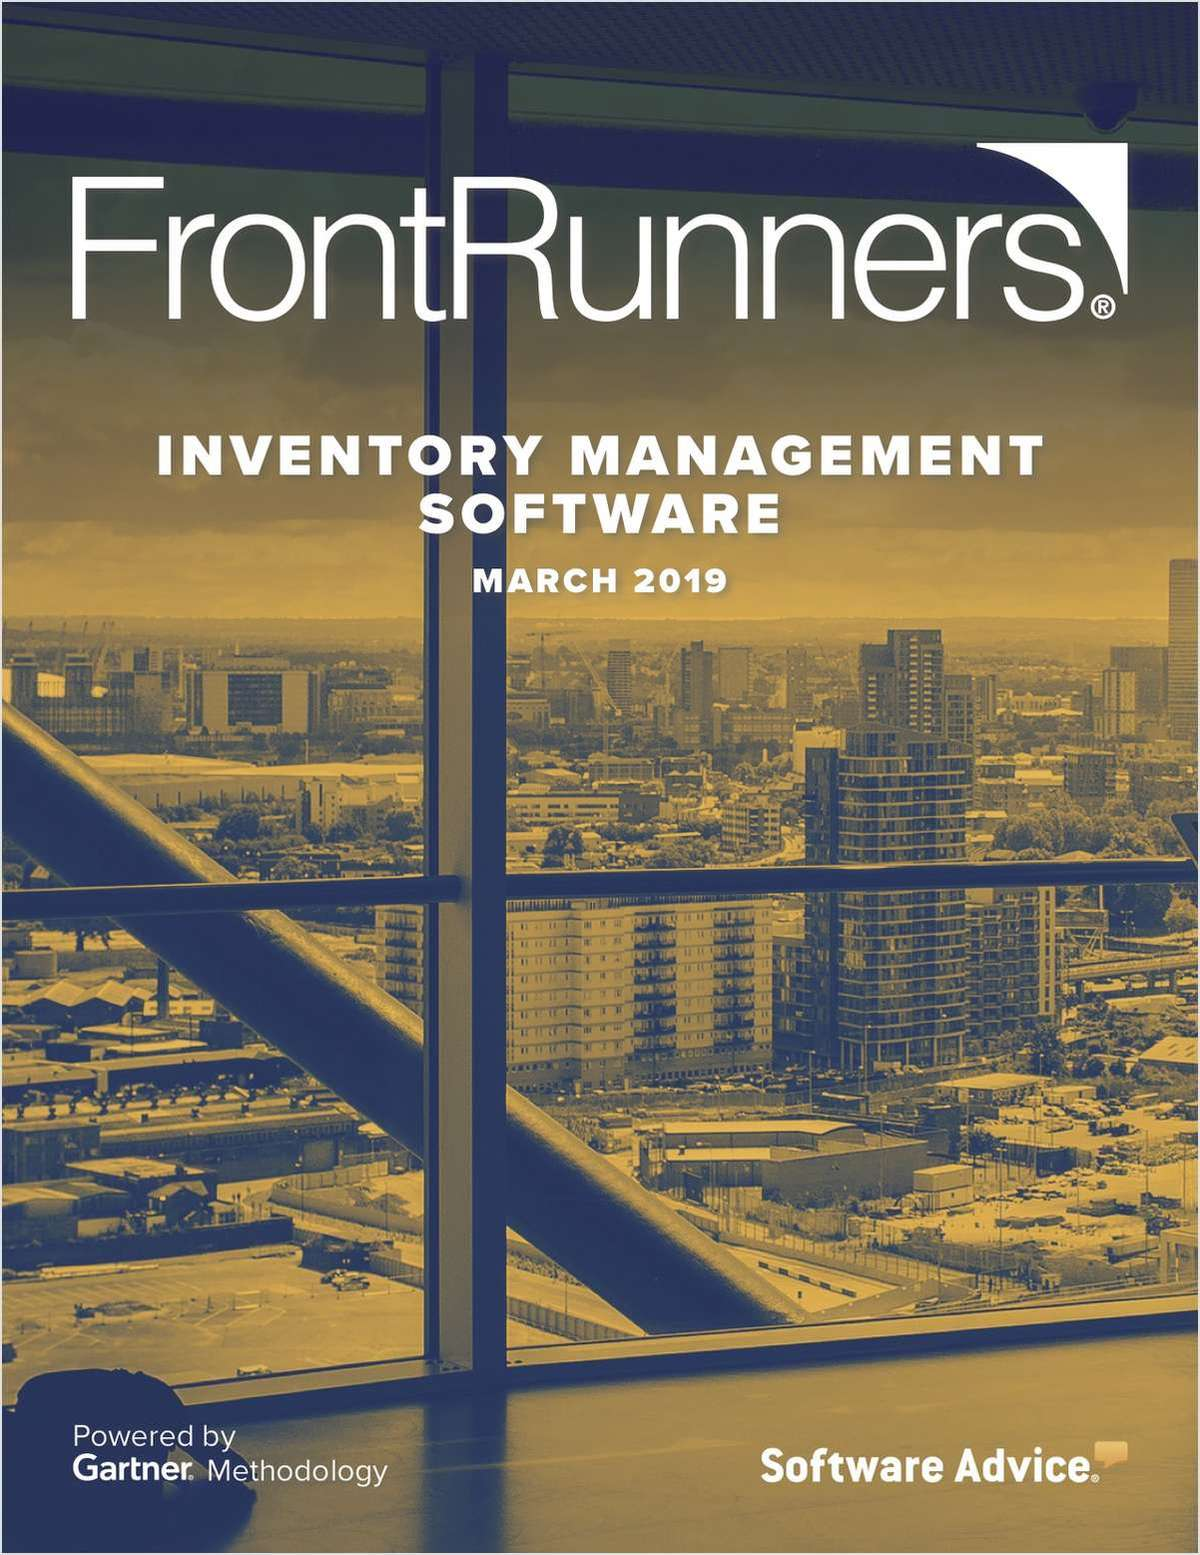 Updated: Top Rated FrontRunners for Inventory Management Software